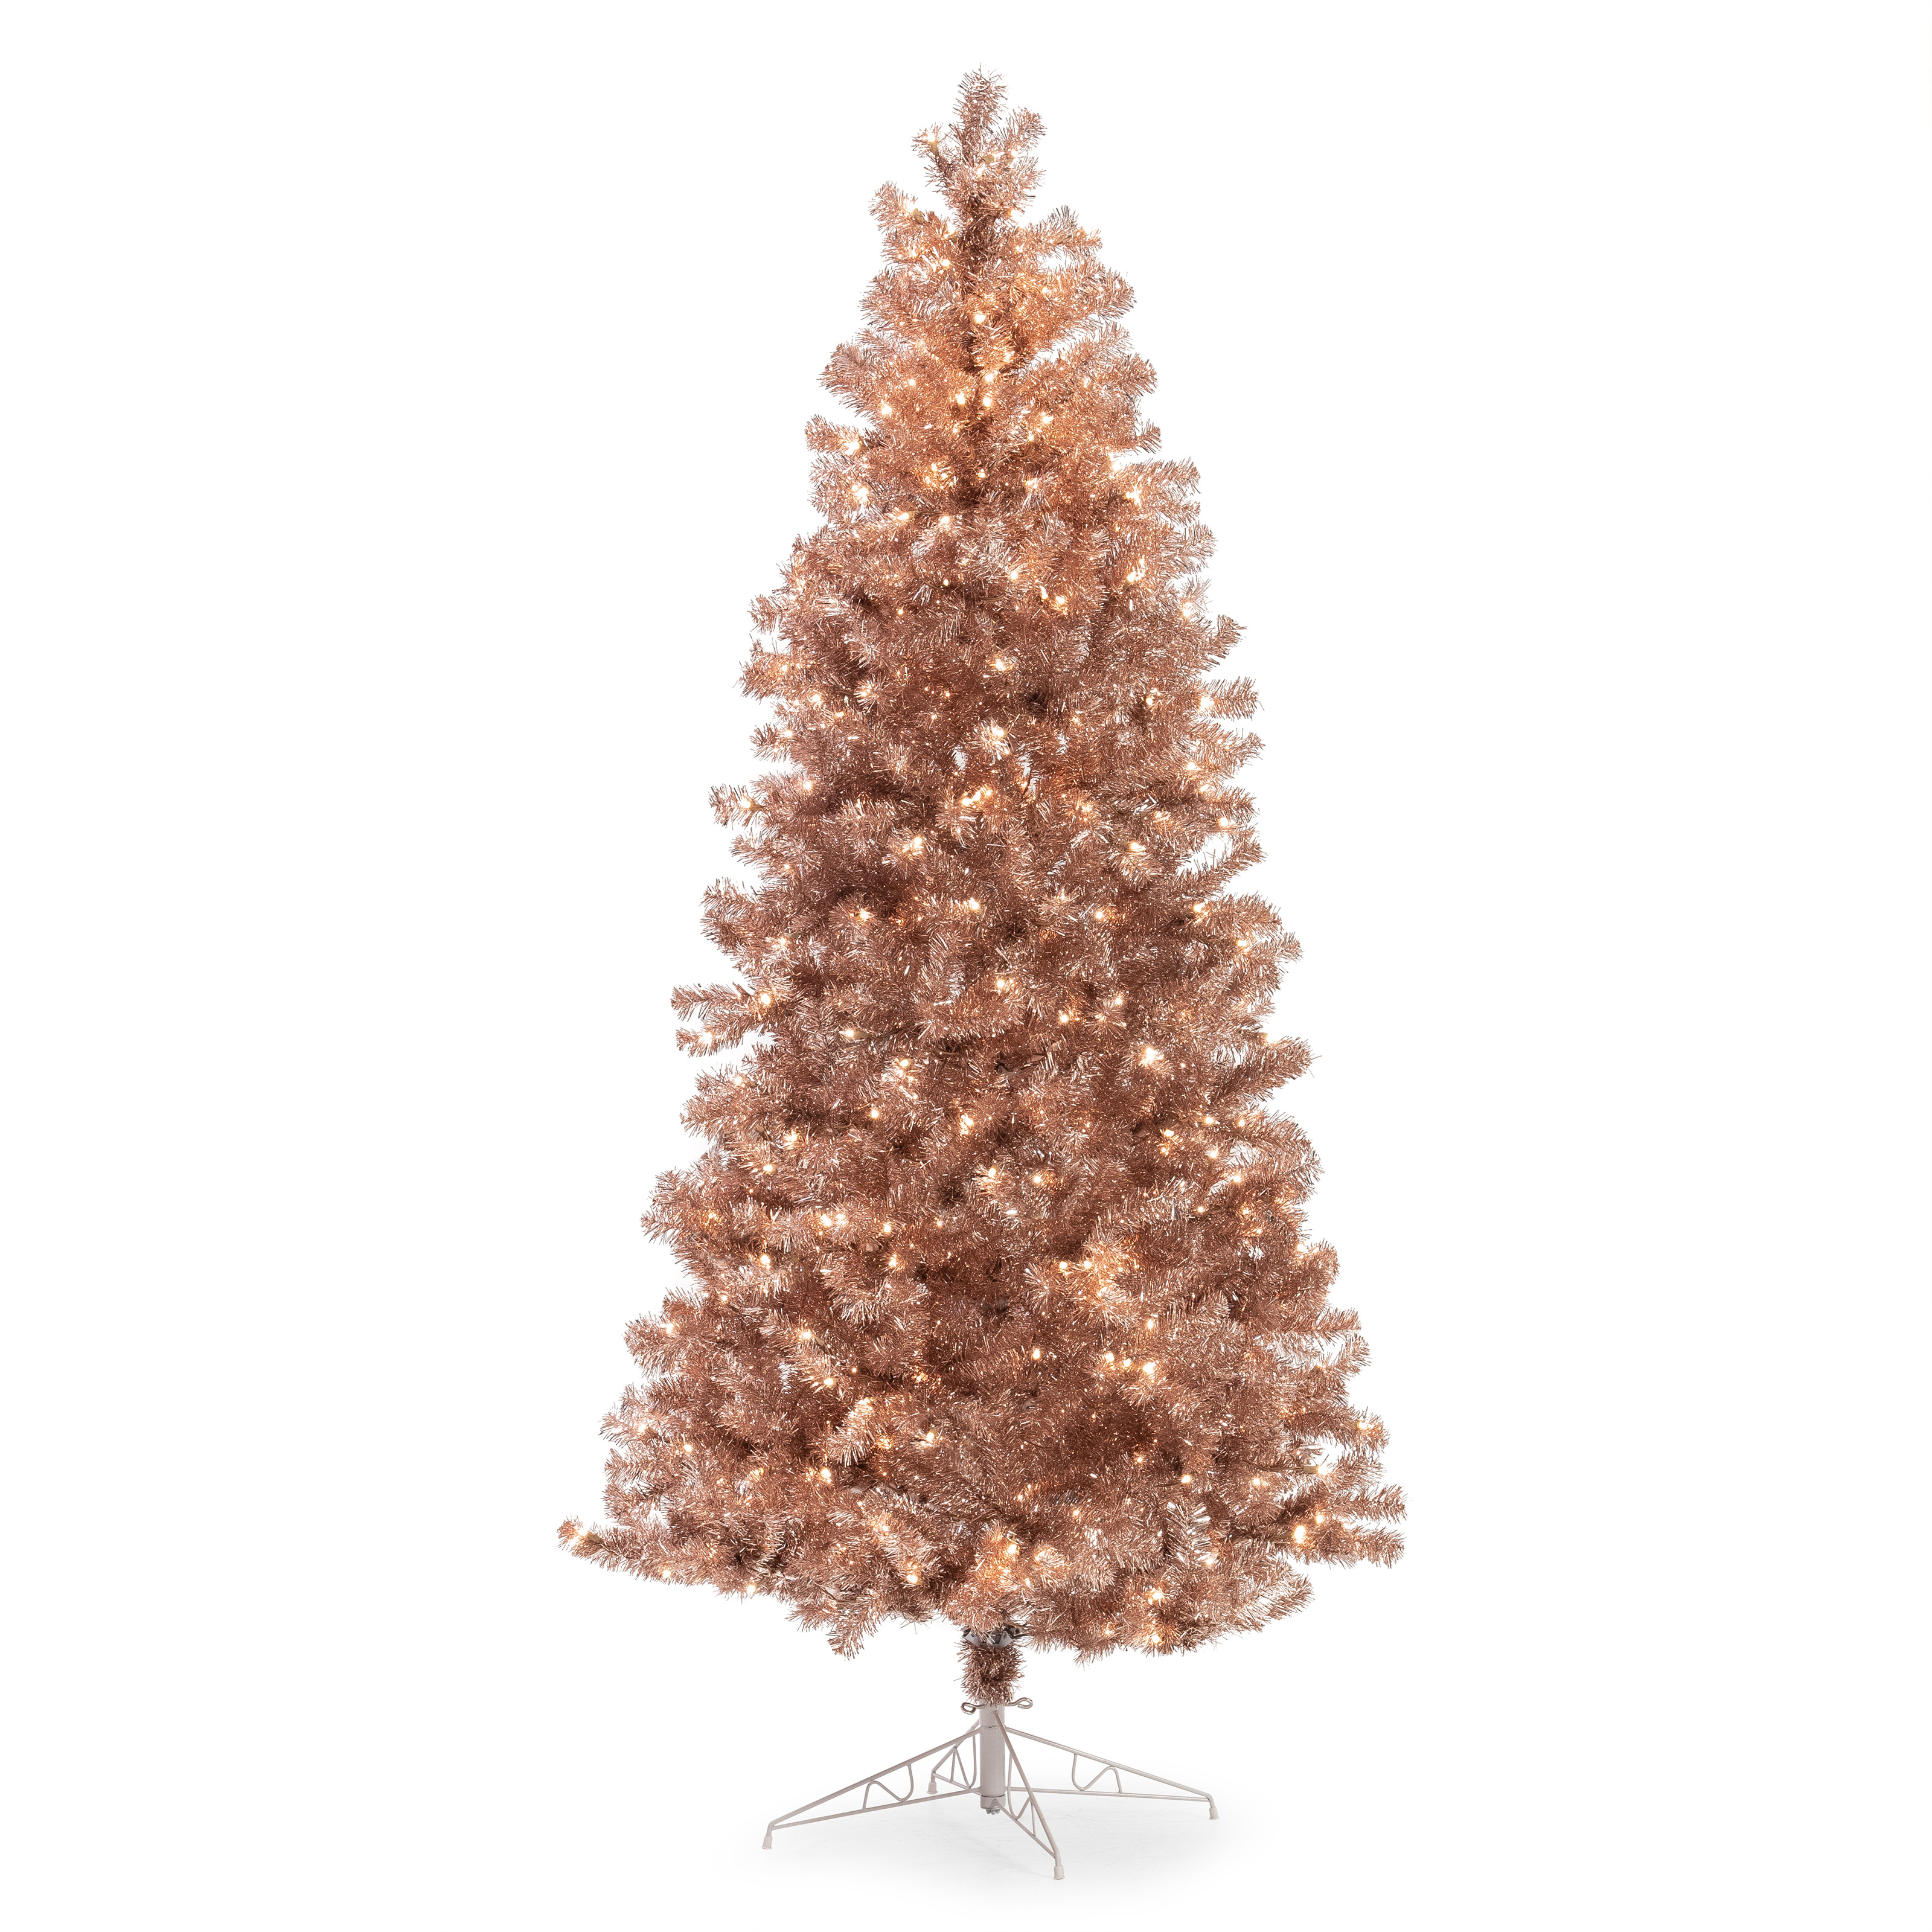 Belham Living 7.5ft Pre-Lit Metallic Artificial Christmas Tree with Clear Lights - Rose Gold